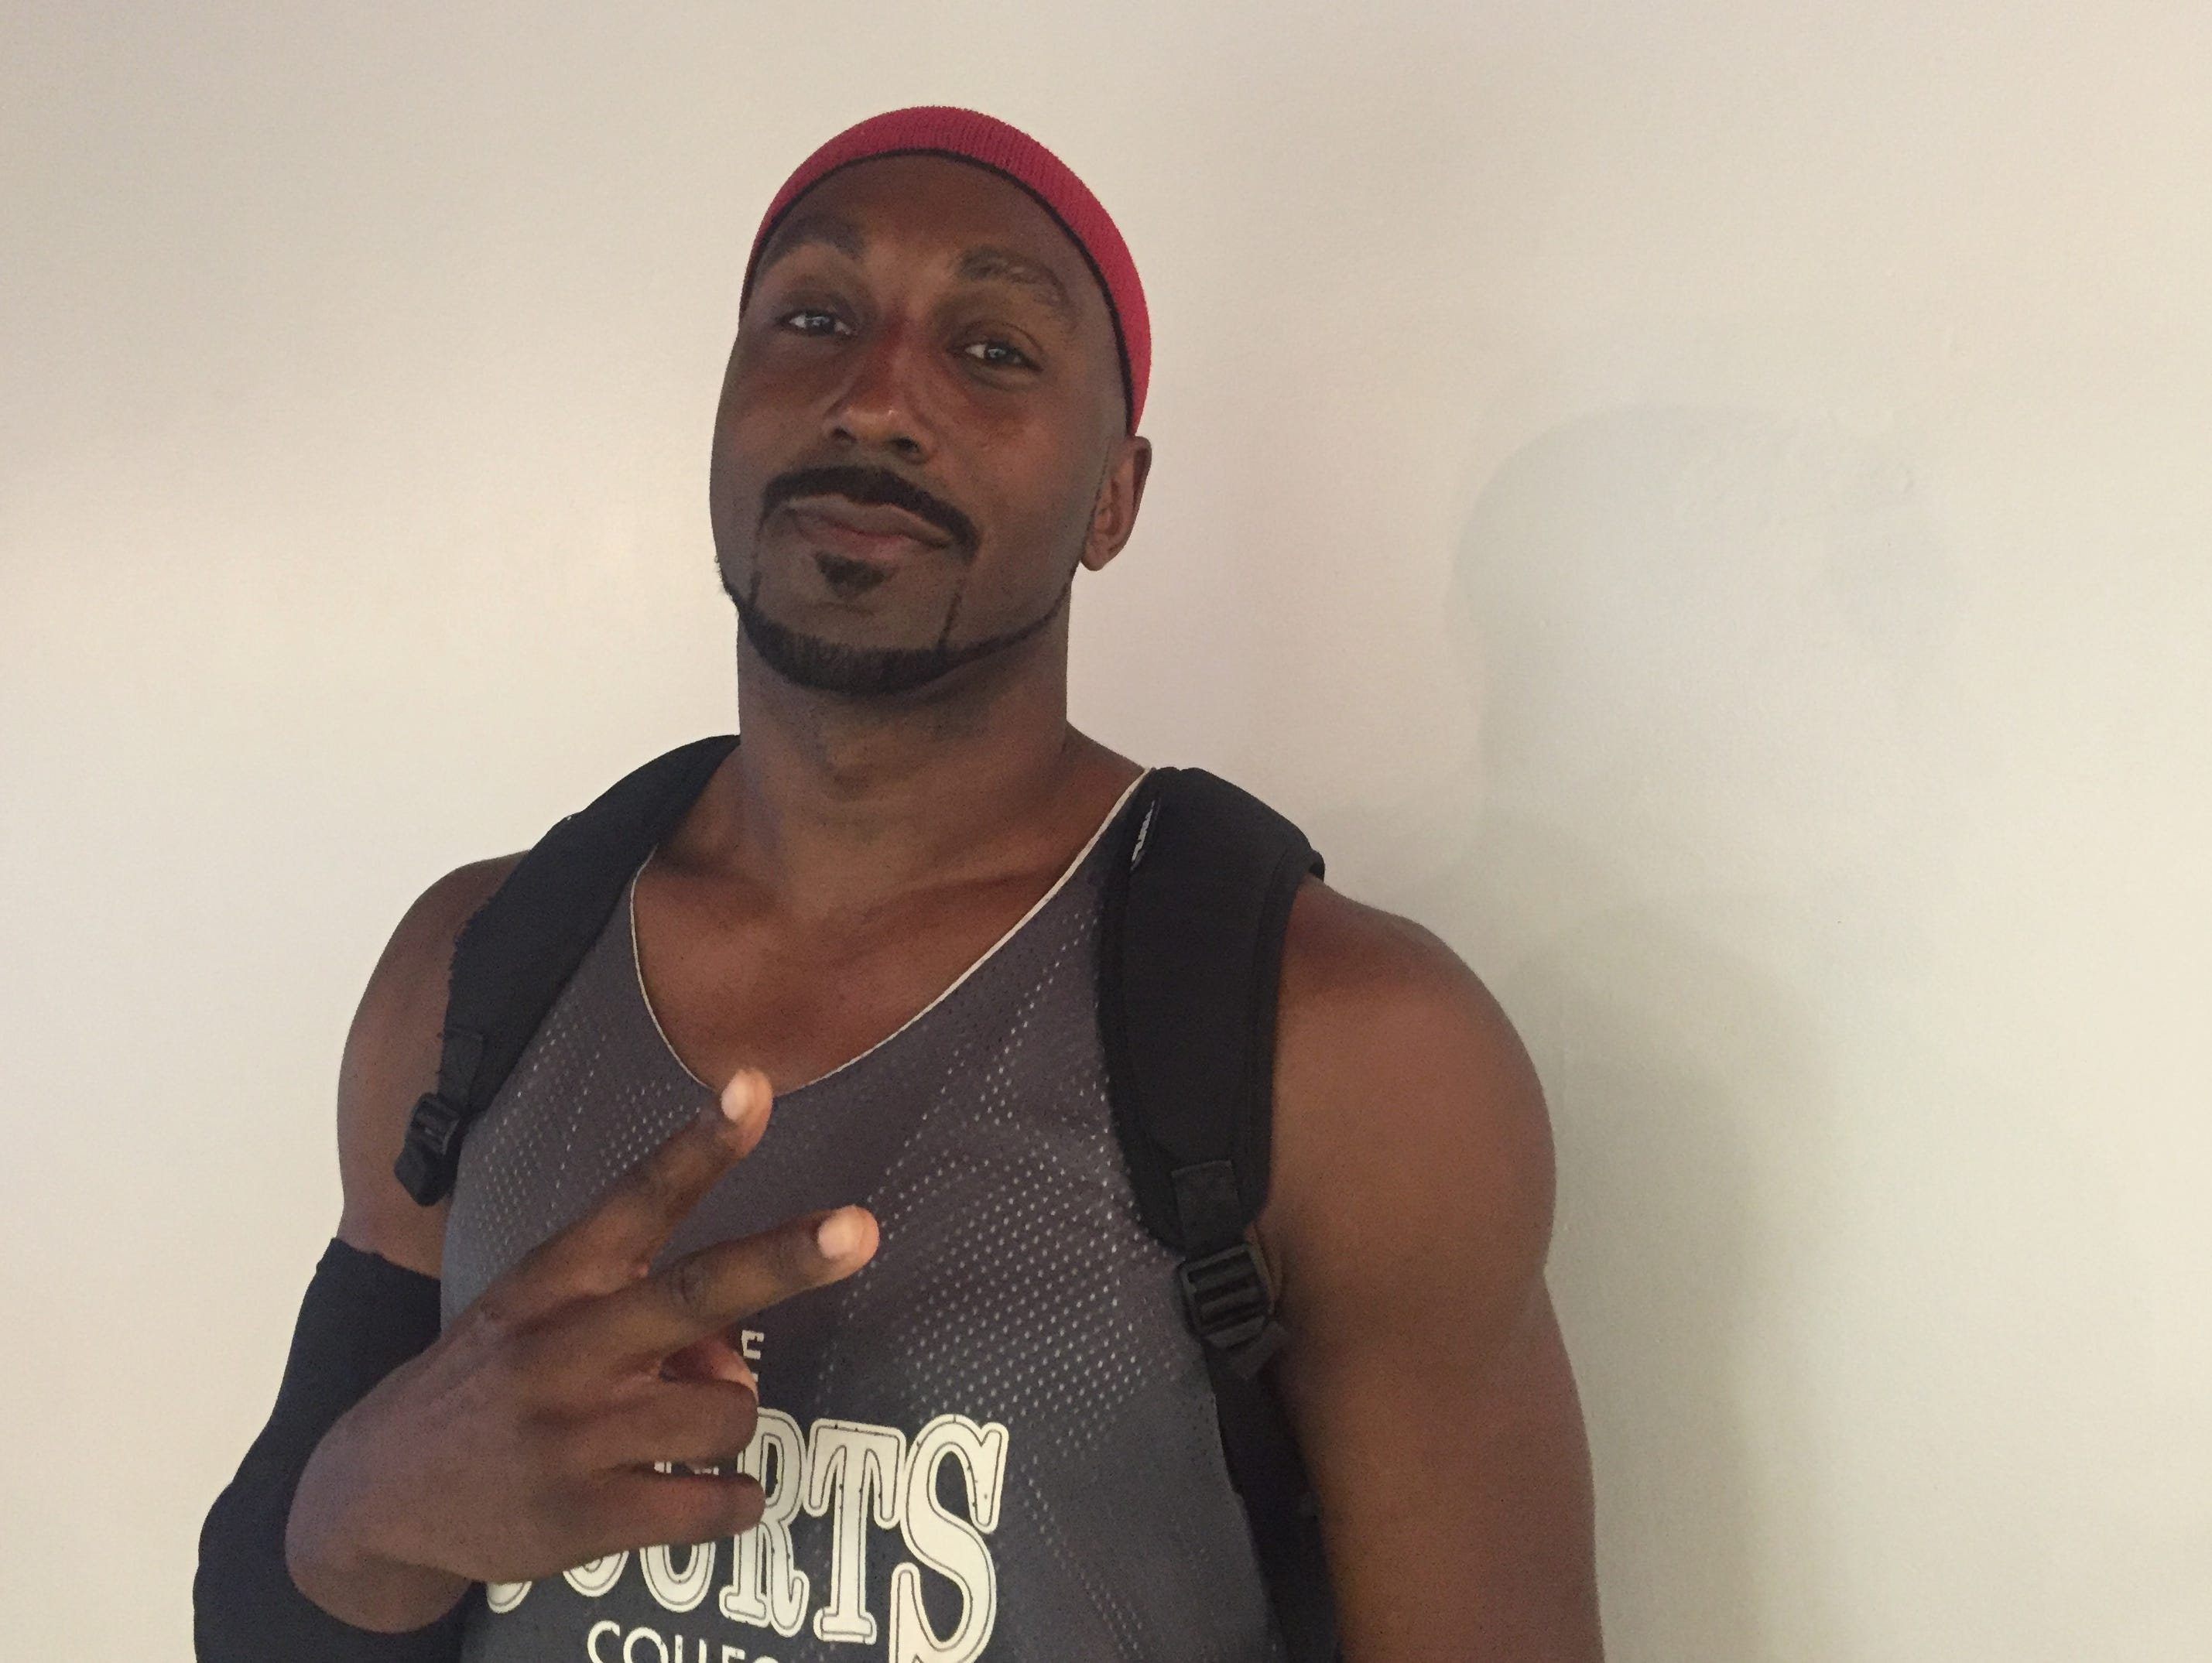 Pro basketball player James Williams, 37, poses for a photograph at the Courts Ezone in Springfield.